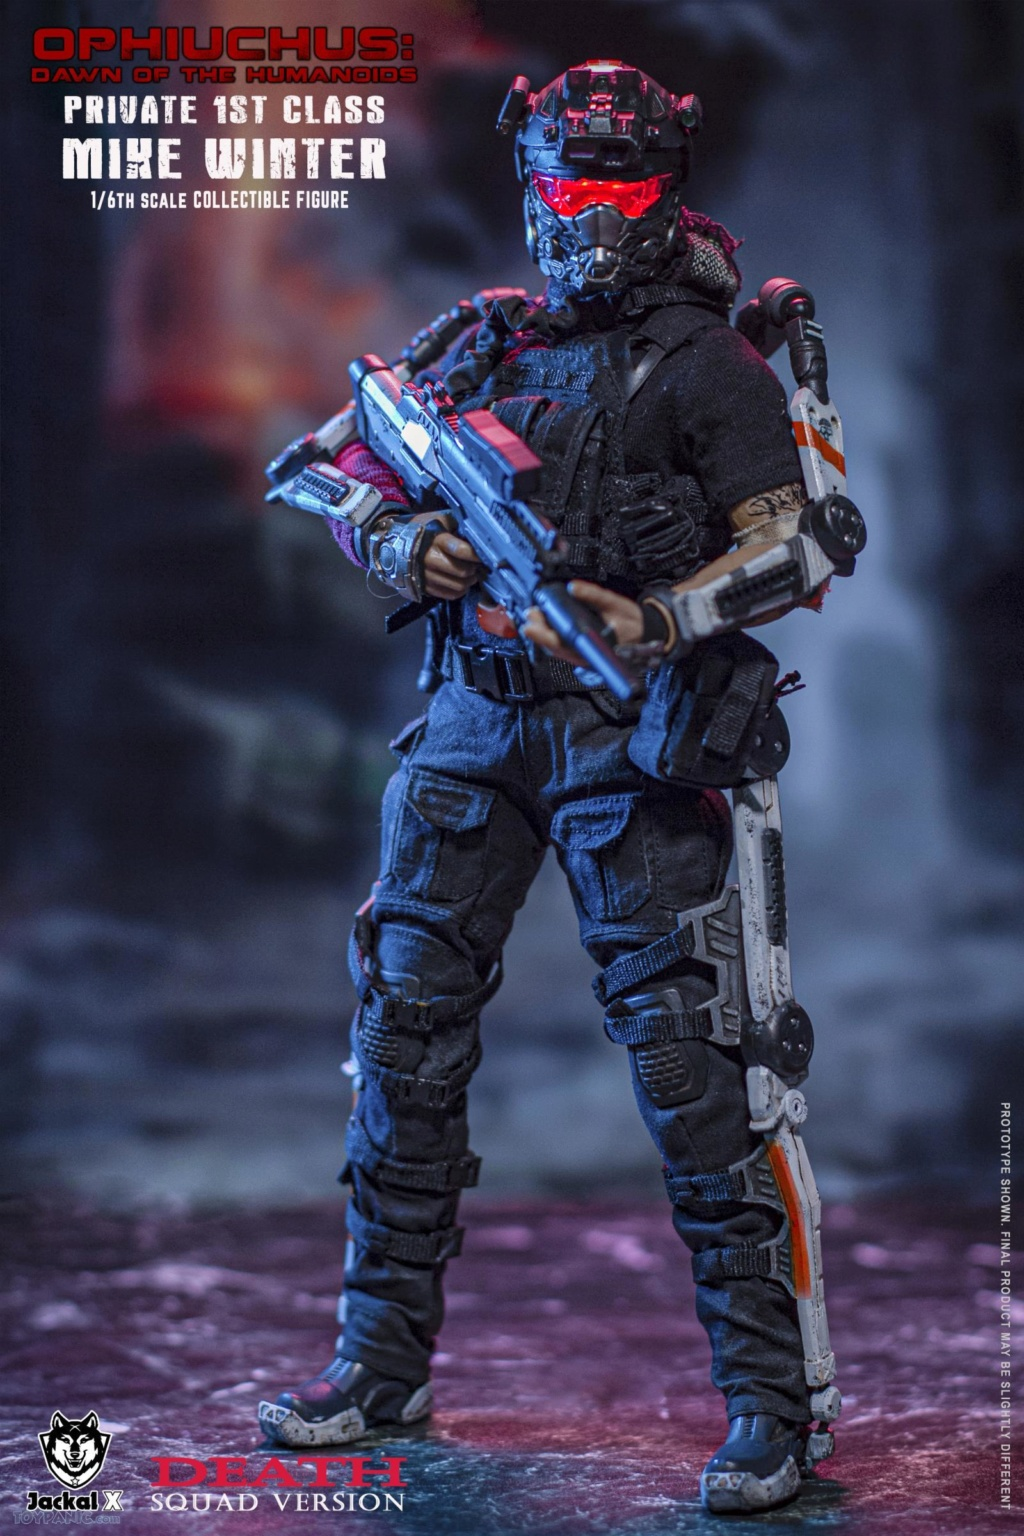 DawnOfHumanoid - NEW PRODUCT: JackalX: 1/6 Ophiuchus: Dawn of Humanoid: Private 1st Class Mike Winter Collectible Figure (2 Versions) 43202032